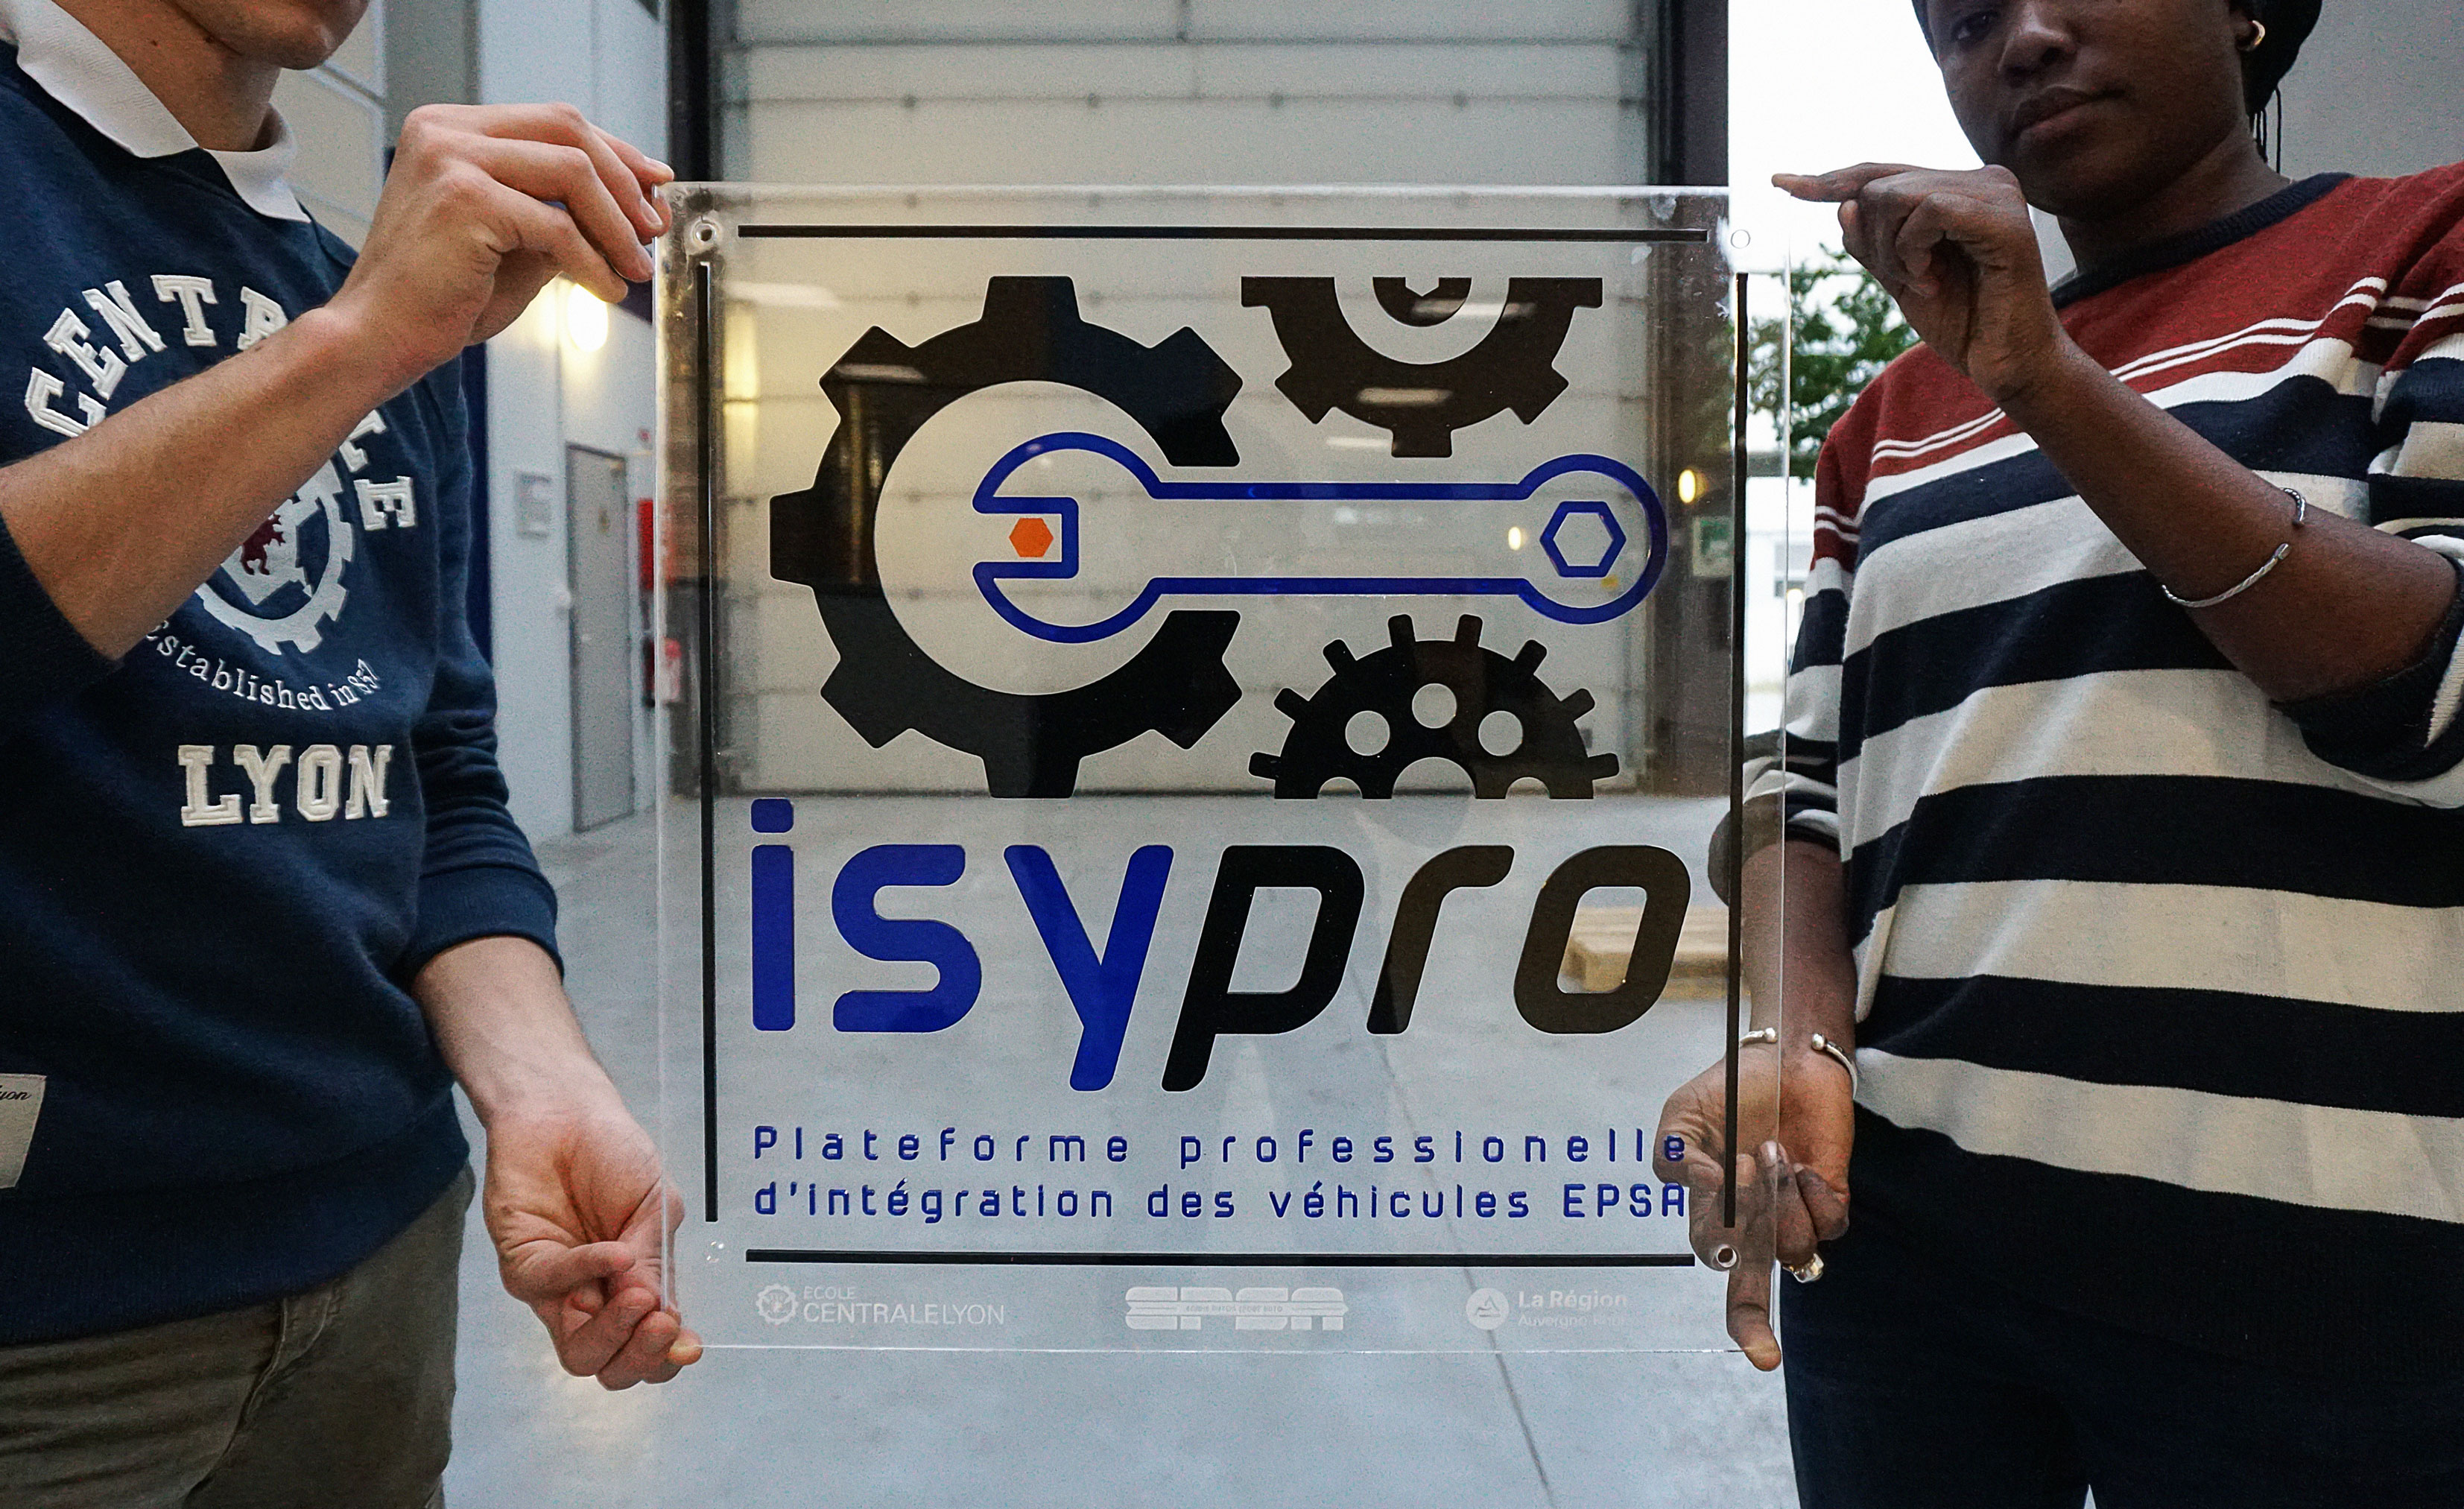 ISYPRO_UNMONTED